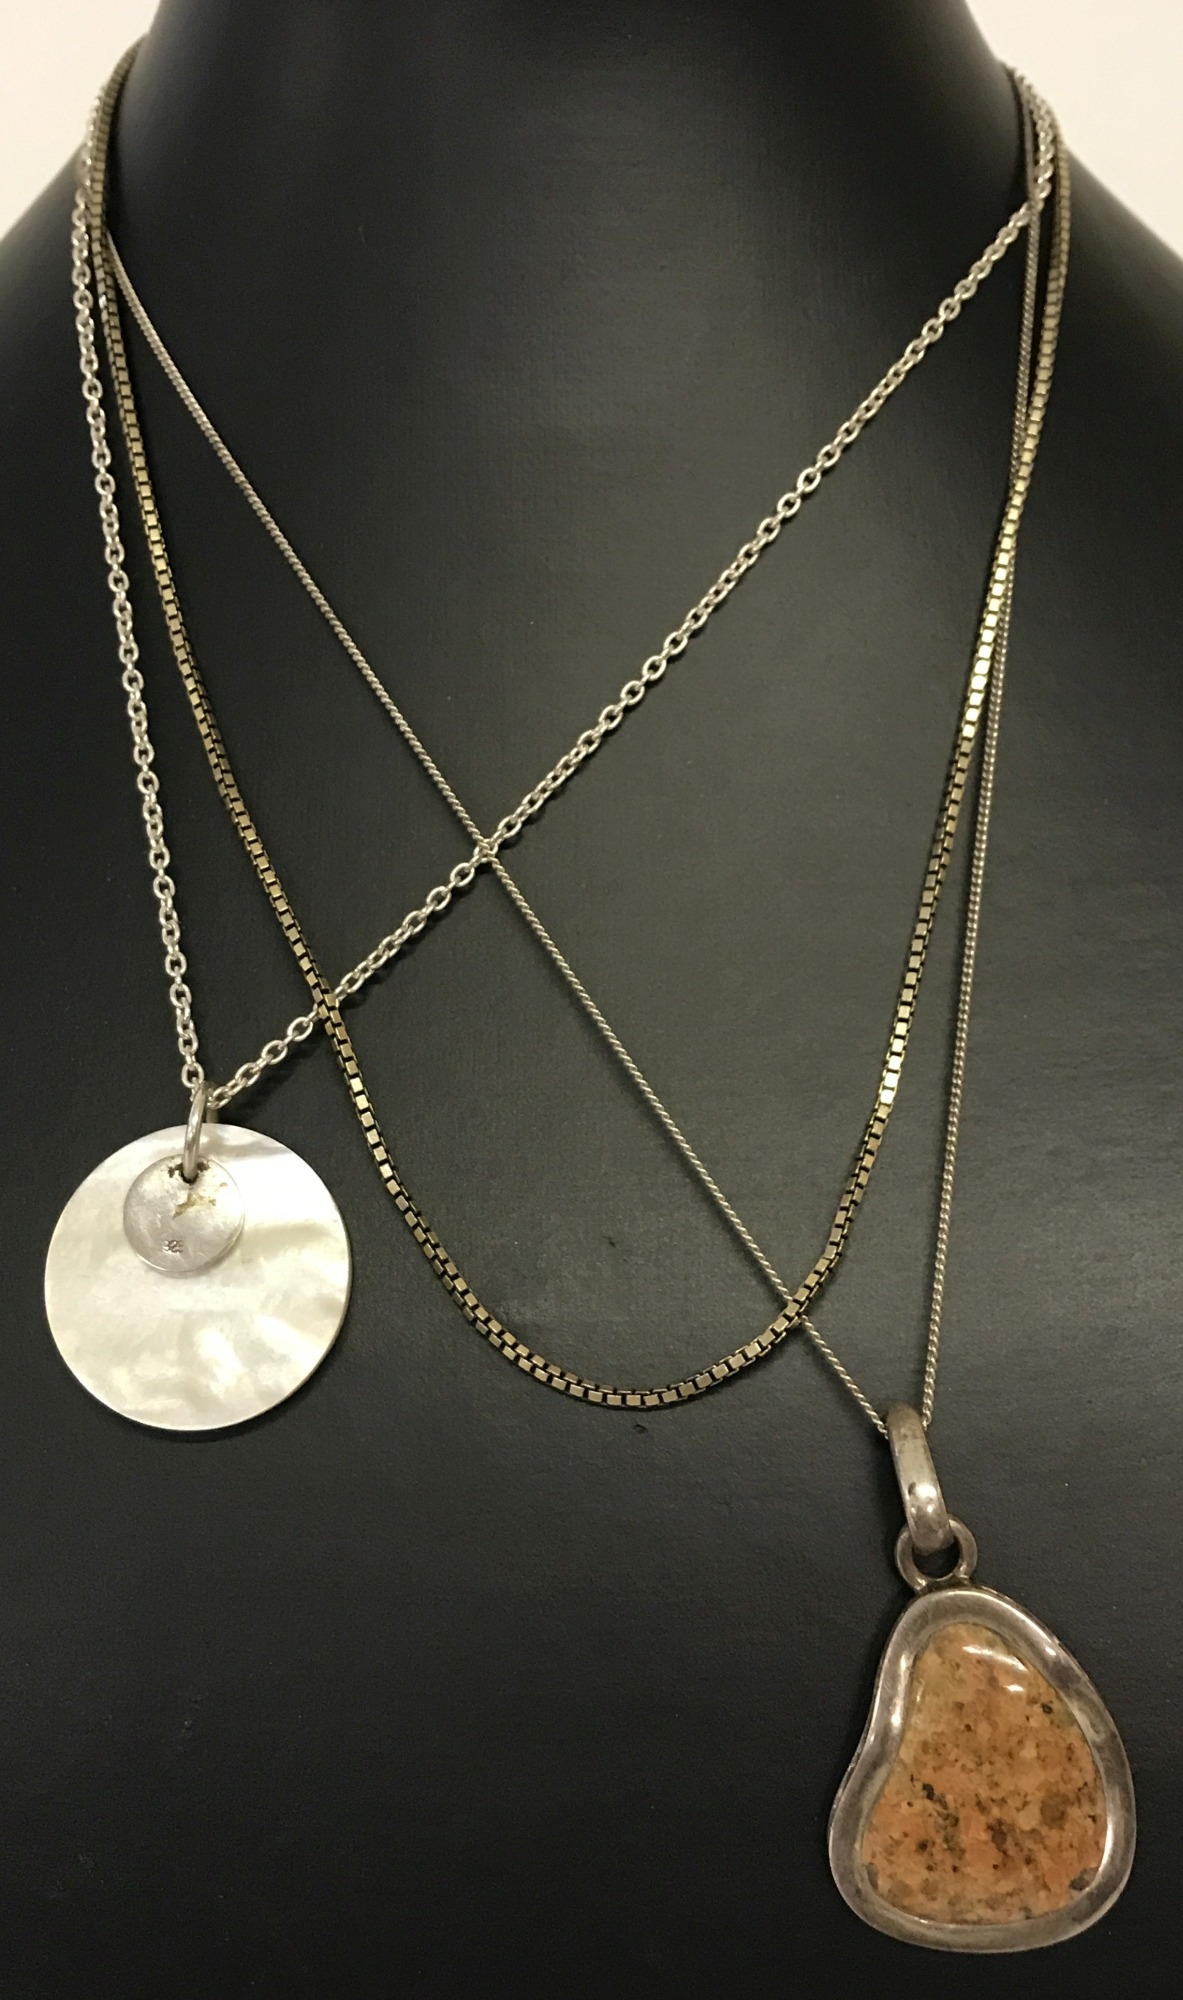 Lot 28 - A modern design natural stone set pendant on a fine curb chain with extension.